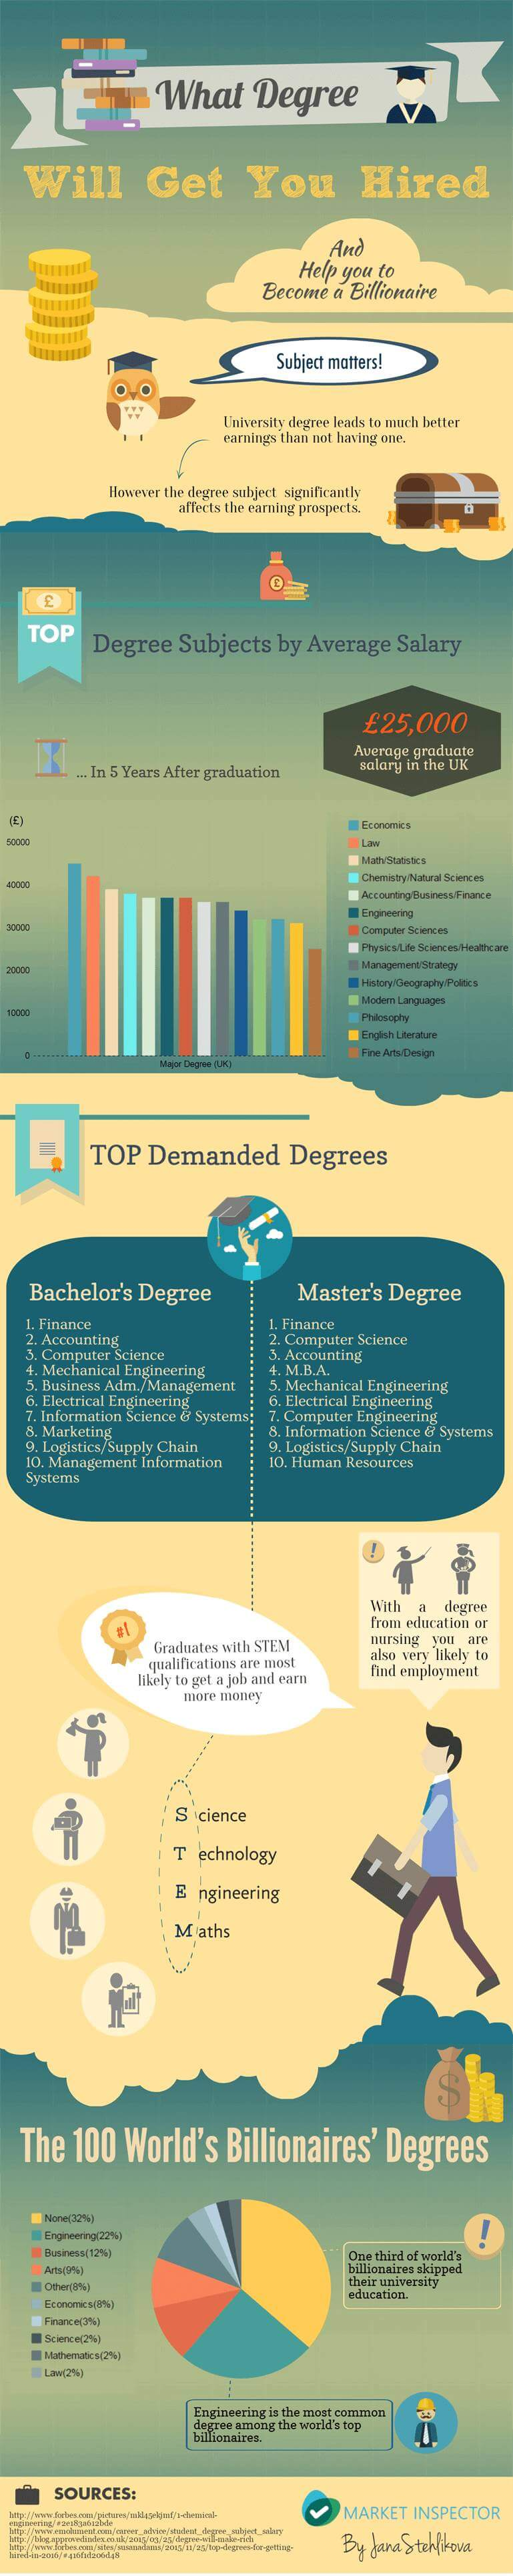 What Degree Will Get You Hired